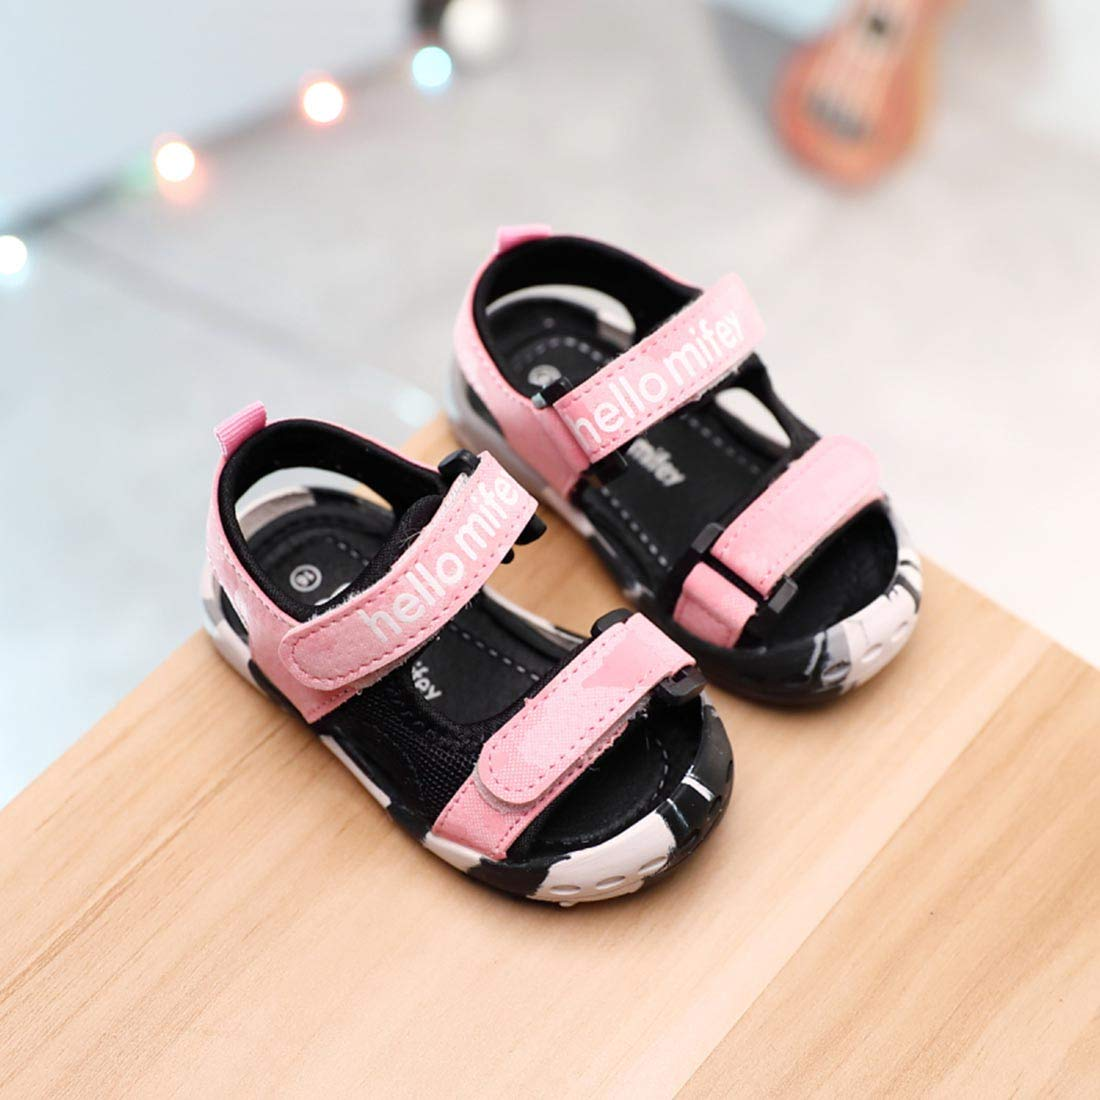 YIBLBOX Baby Boys Girls Summer Breathable PU Open-Toe Beach Two-Strap Sandals 12-36 Months